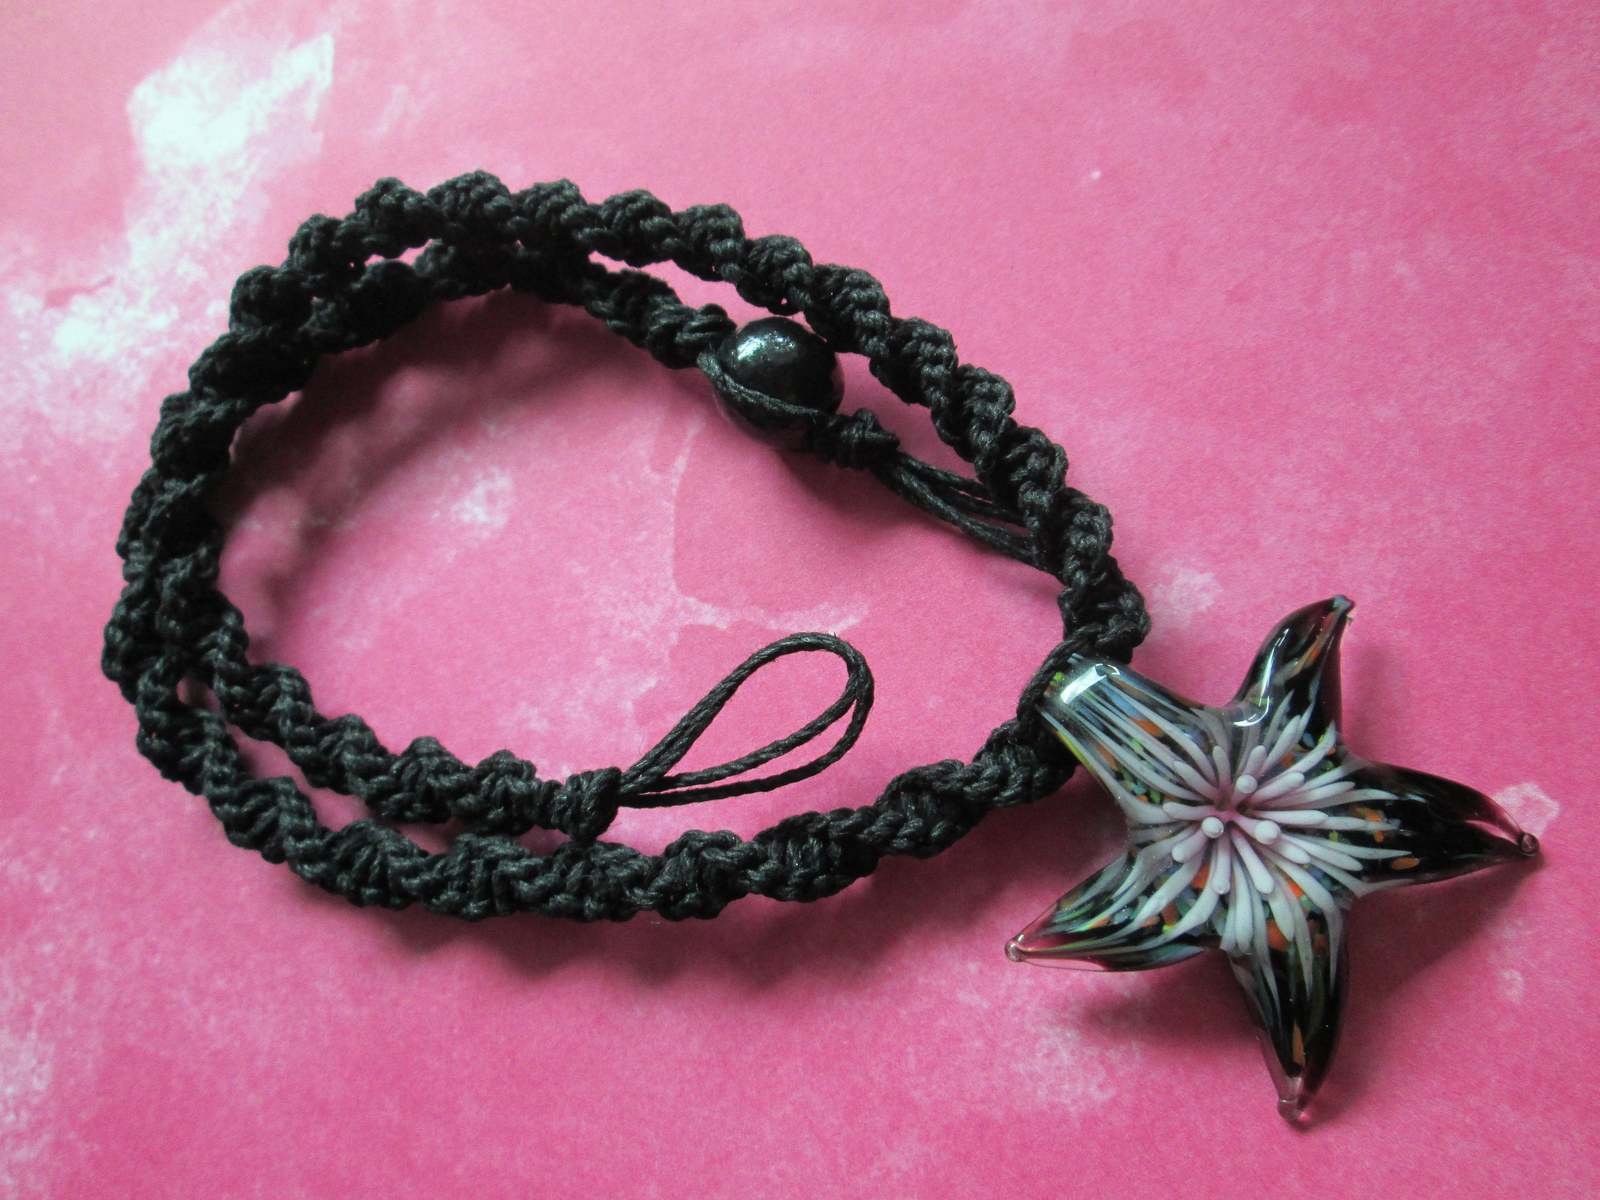 Handmade Black Hemp Necklace with Glass Pink Flower Implosion Starfish Pendant